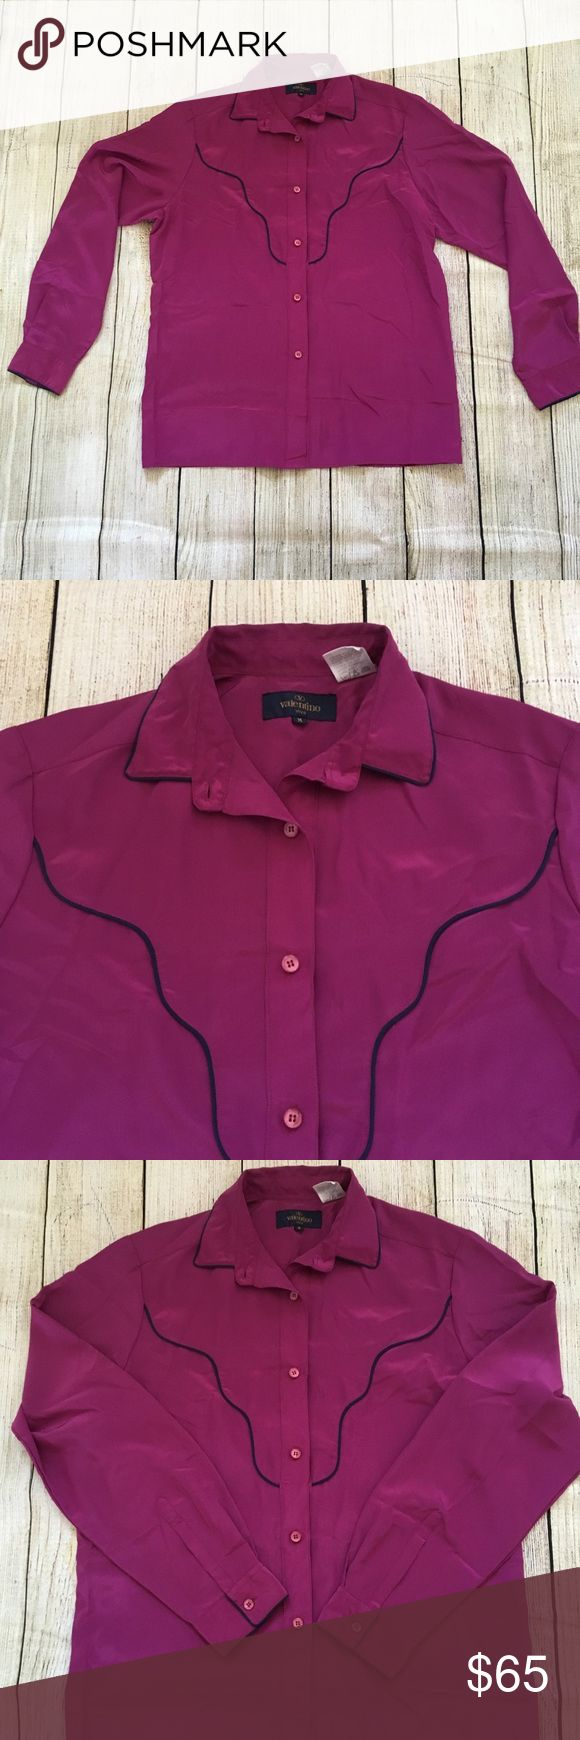 "Valentino Viva Women's M Fusia Button Down Shirt Valentino Viva Women's M Fusia Button Down Shirt. Deep Fusia Color with Navy Blue Piping - color is most similar to the 6th photo color. There's a dark spot on the bottom of the shirt near buttons but I don't think it's a stain; it looks like a manufacturer's error.   Measurements:  Sleeve length: 31"" (from center of back of collar, just below collar band, to end of cuff). Armpit-to-armpit: 20.5"". Chest (double the armpit-to-armpit): 41""…"